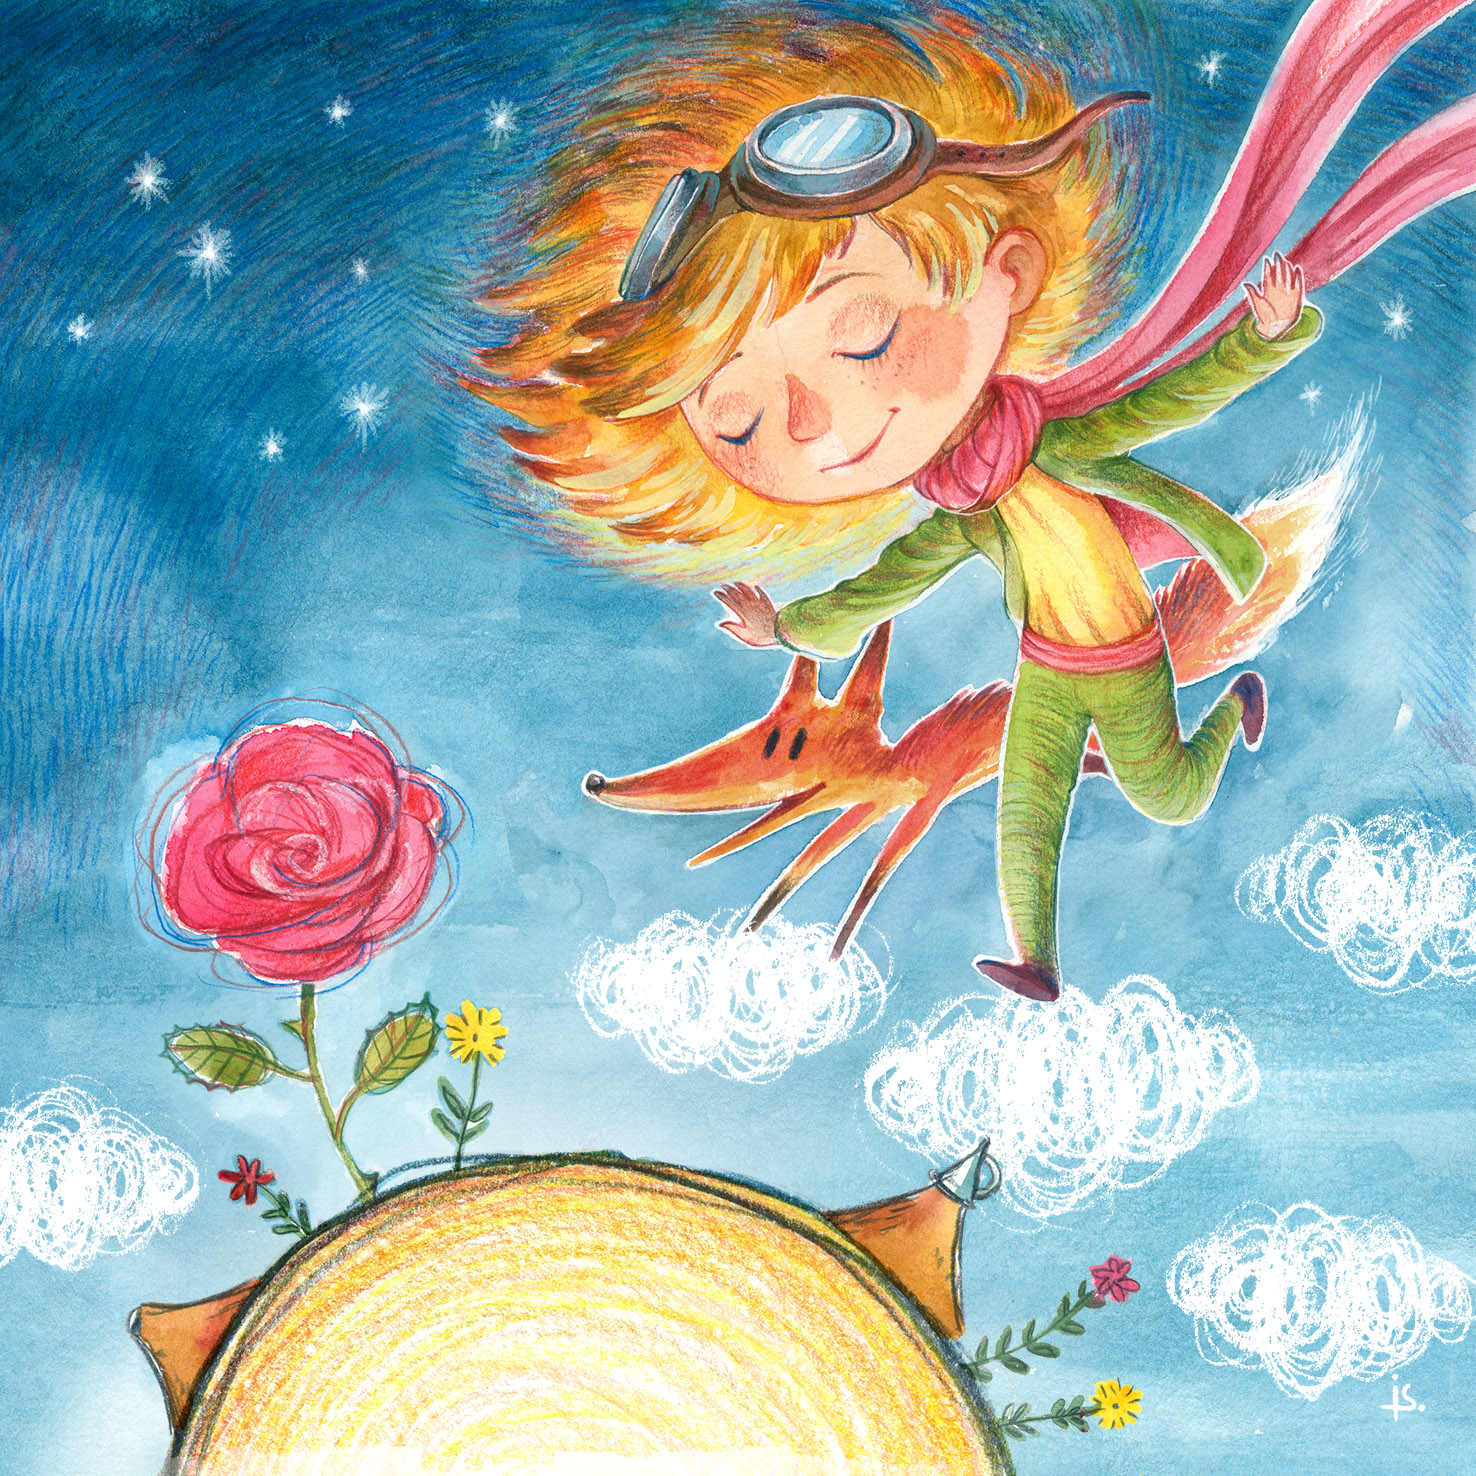 I will be the Little Prince